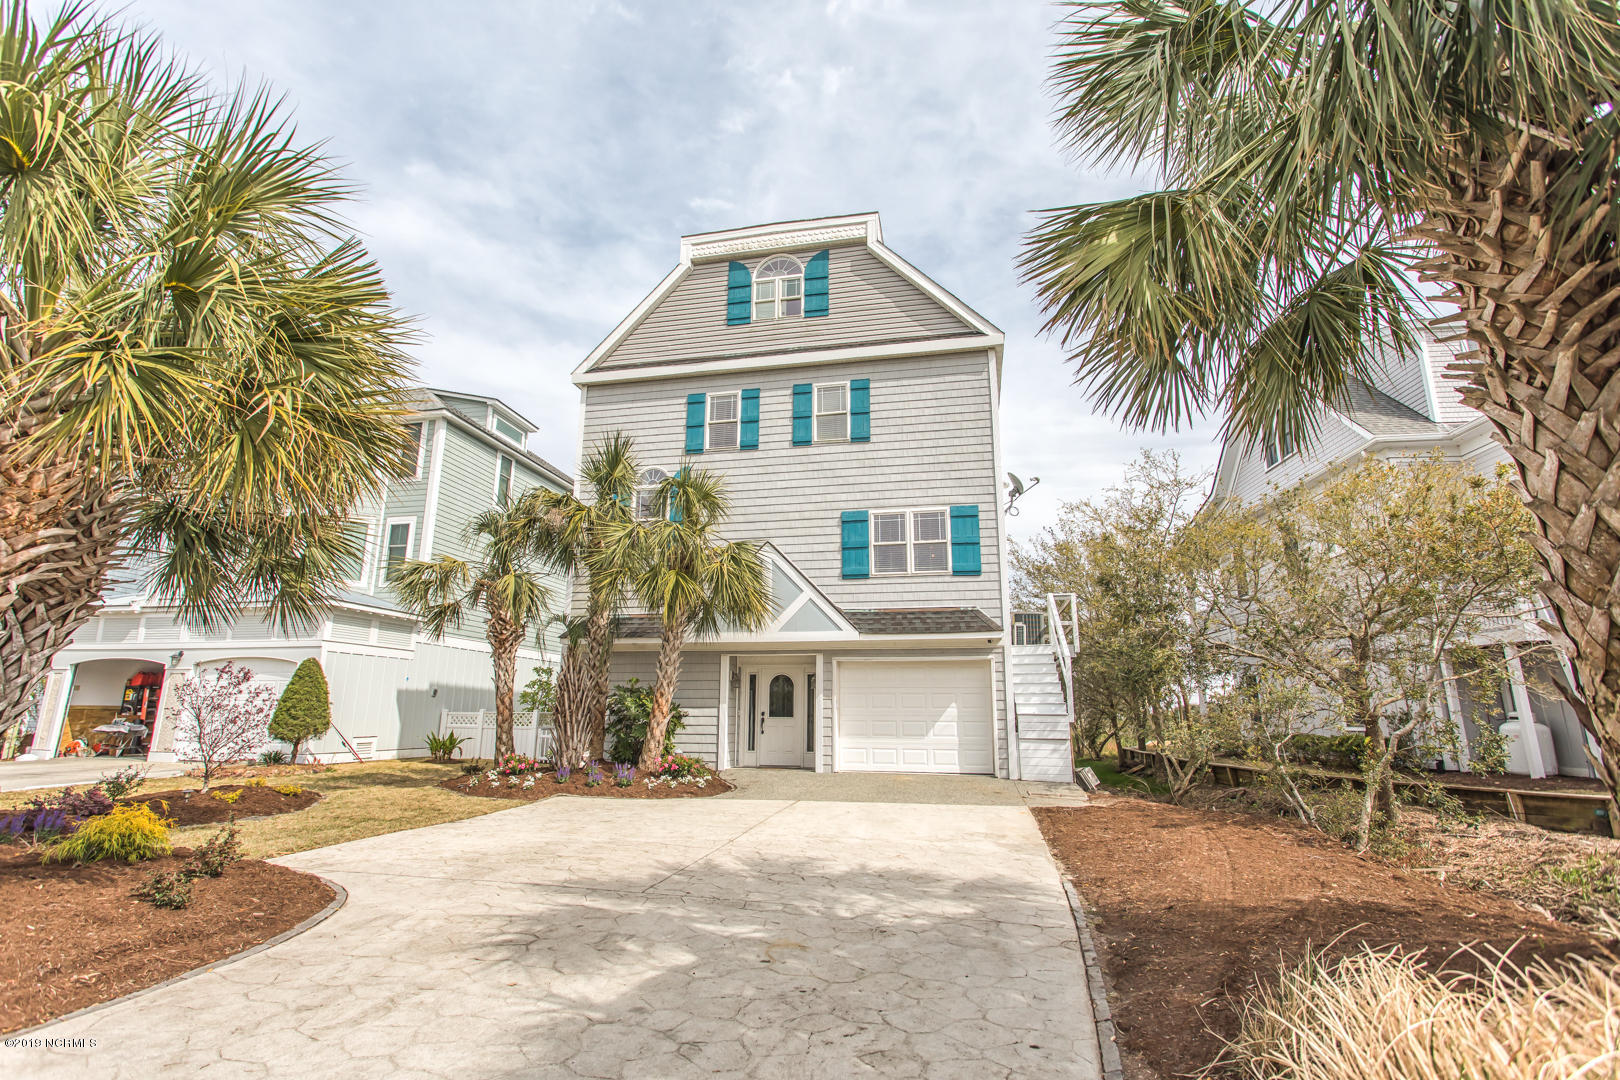 240 Windy Hills Drive, Wilmington, North Carolina, 3 Bedrooms Bedrooms, 8 Rooms Rooms,3 BathroomsBathrooms,Single family residence,For sale,Windy Hills,100157943